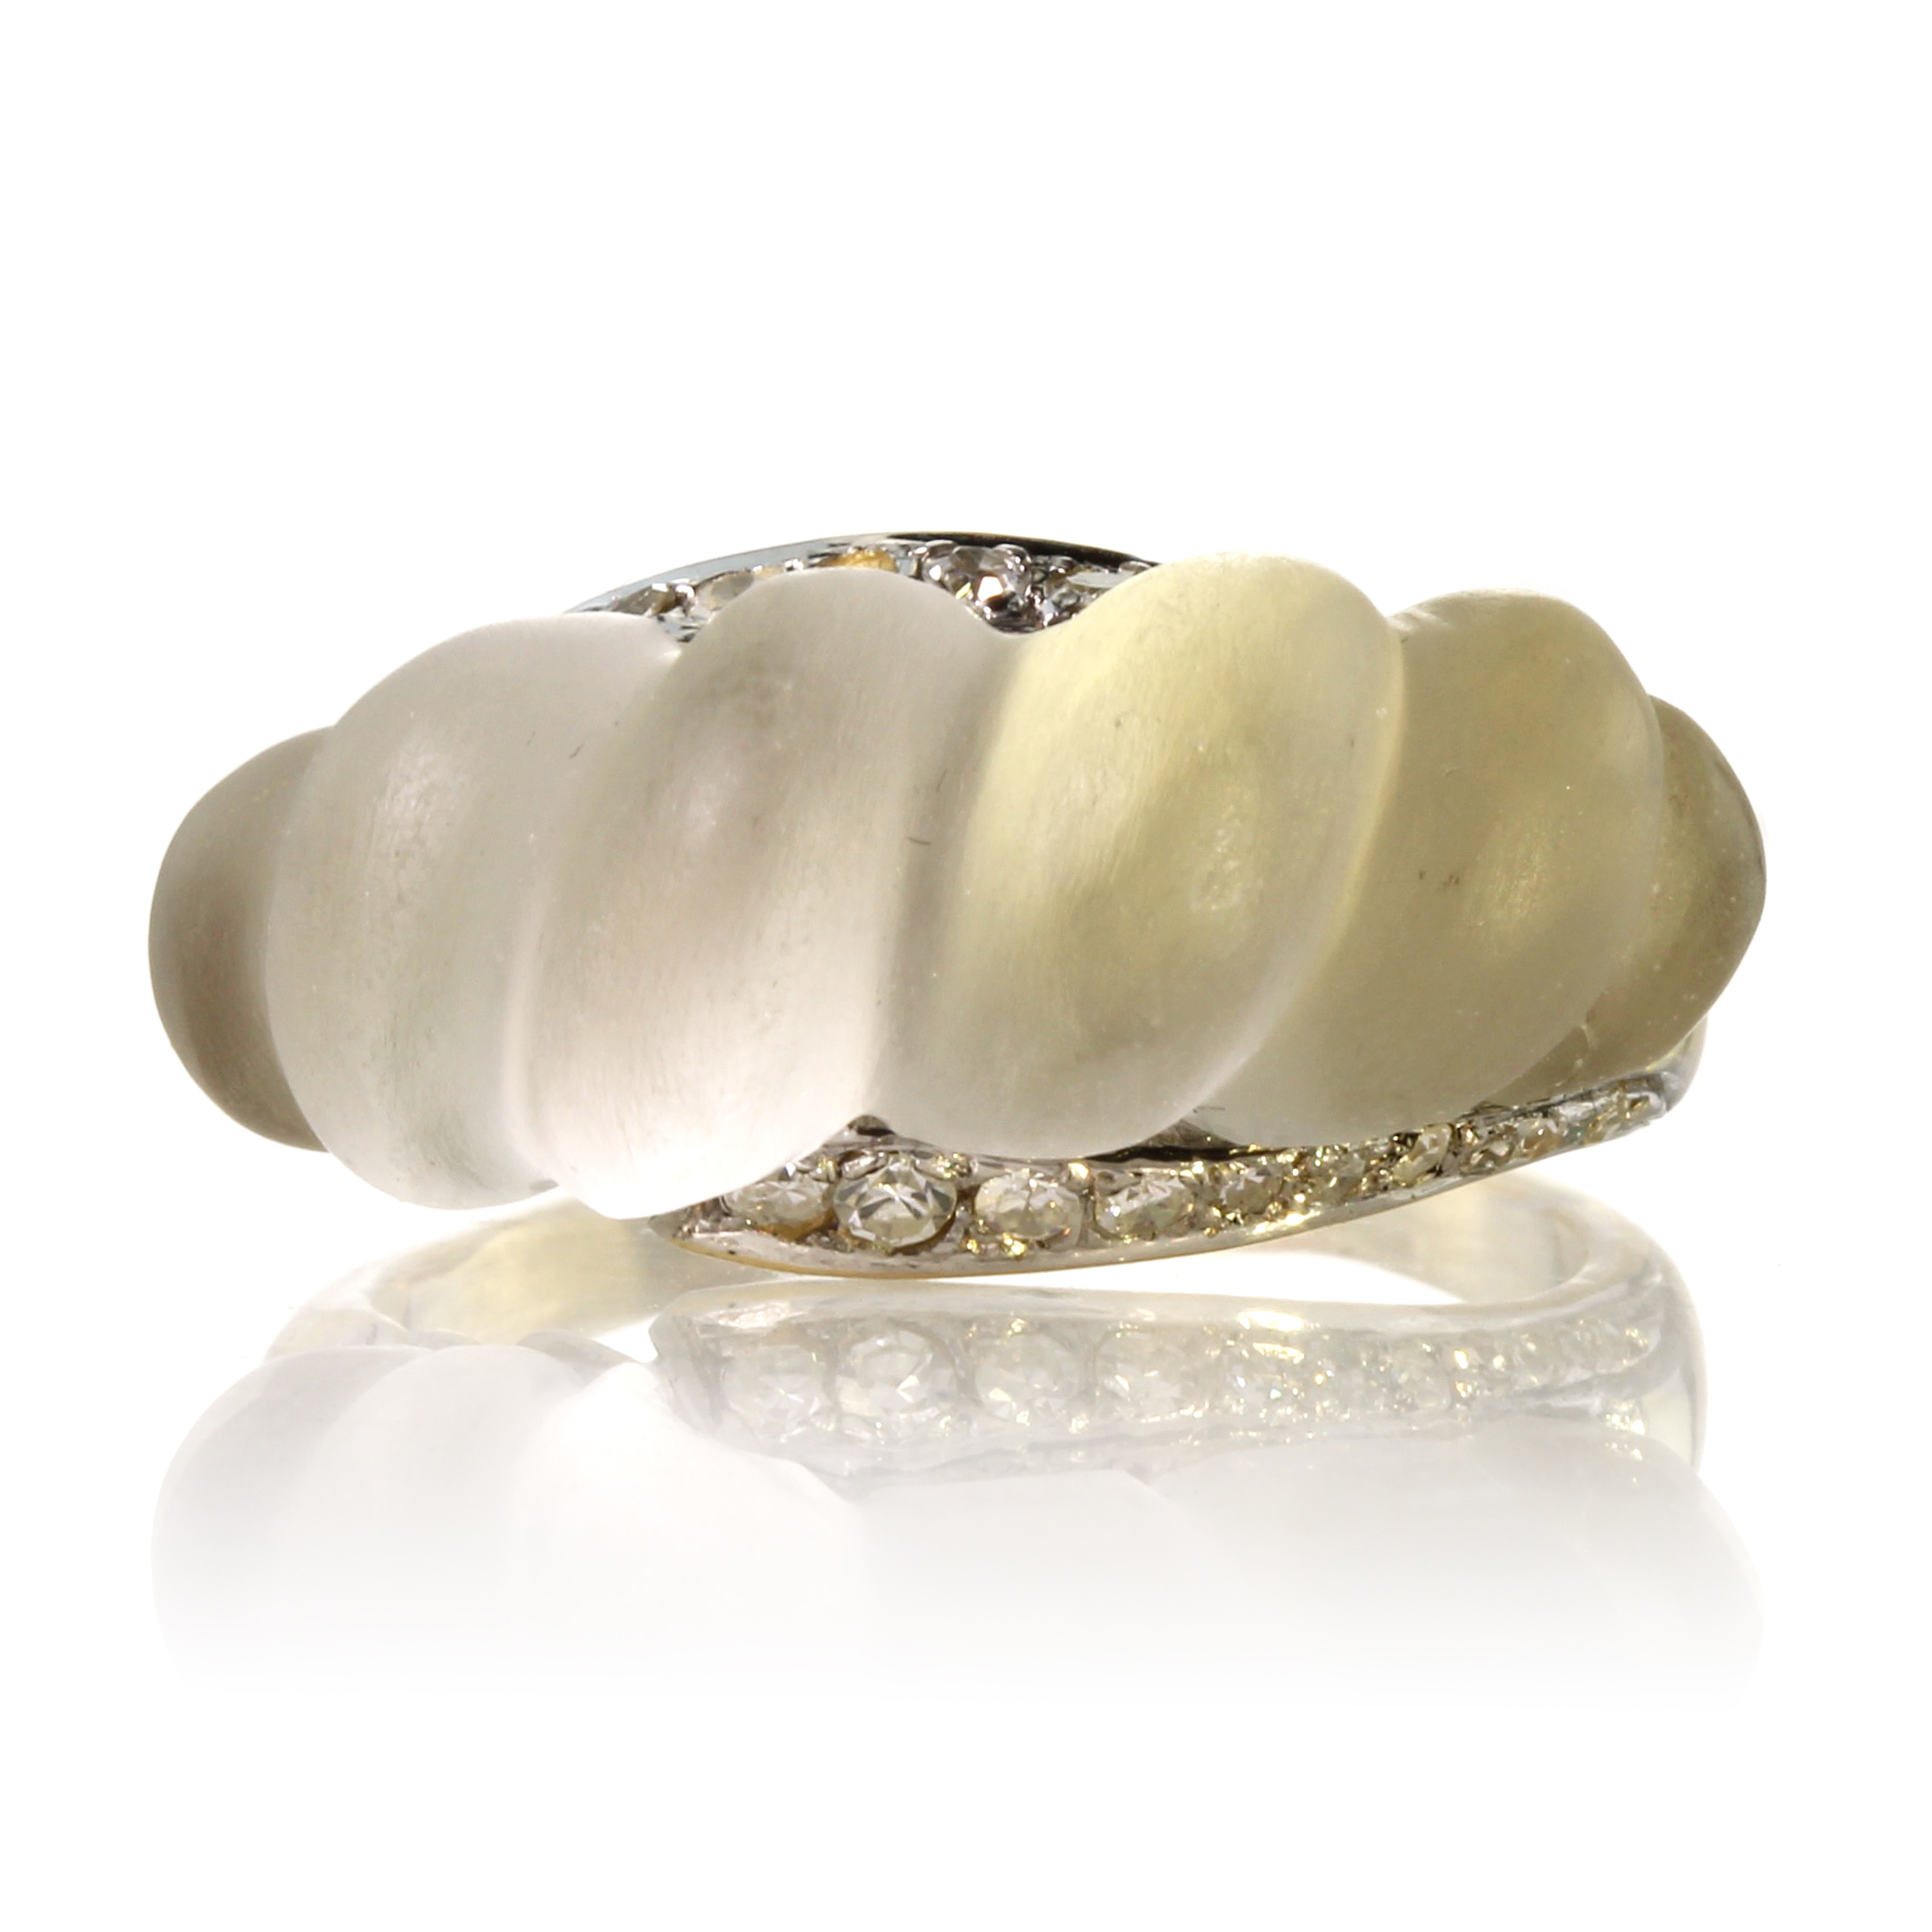 Los 5 - A vintage rock crystal and diamond dress ring in high carat yellow gold of bombe form, the the